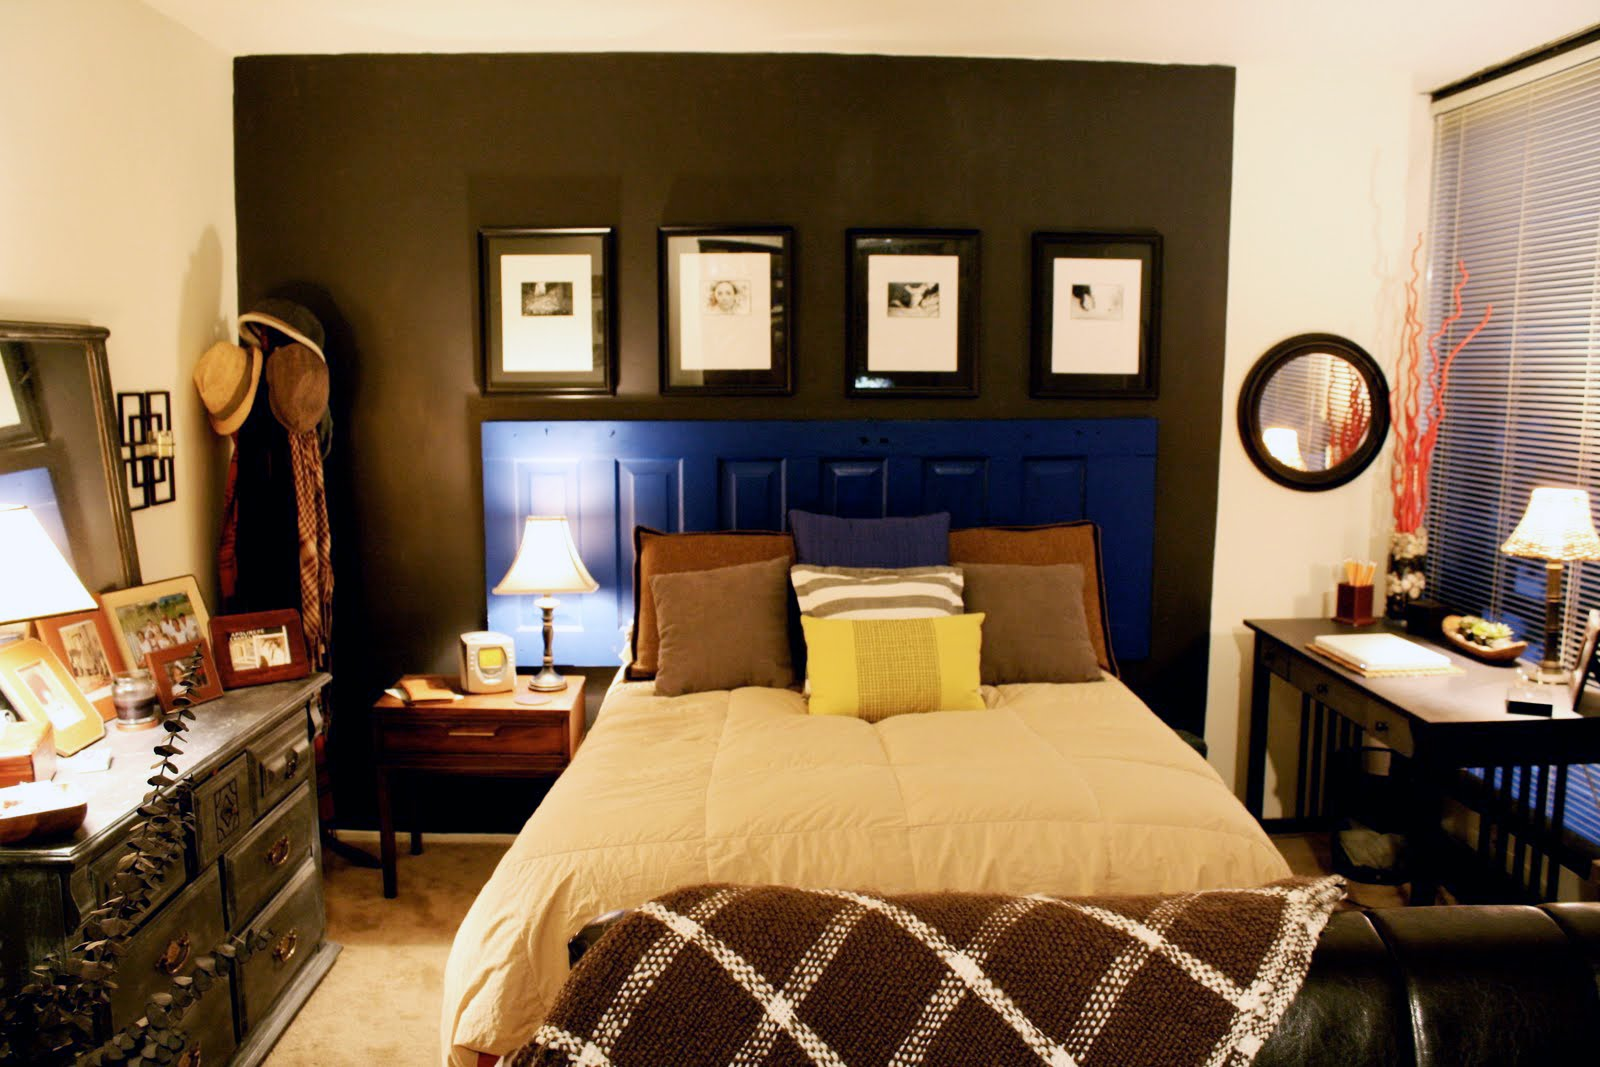 Cheery Ky How To Decorate A Studio Apartment Ideas Studio Apartment Furniture Paint Ideas Studio Apartments apartment Ideas For Studio Apartments